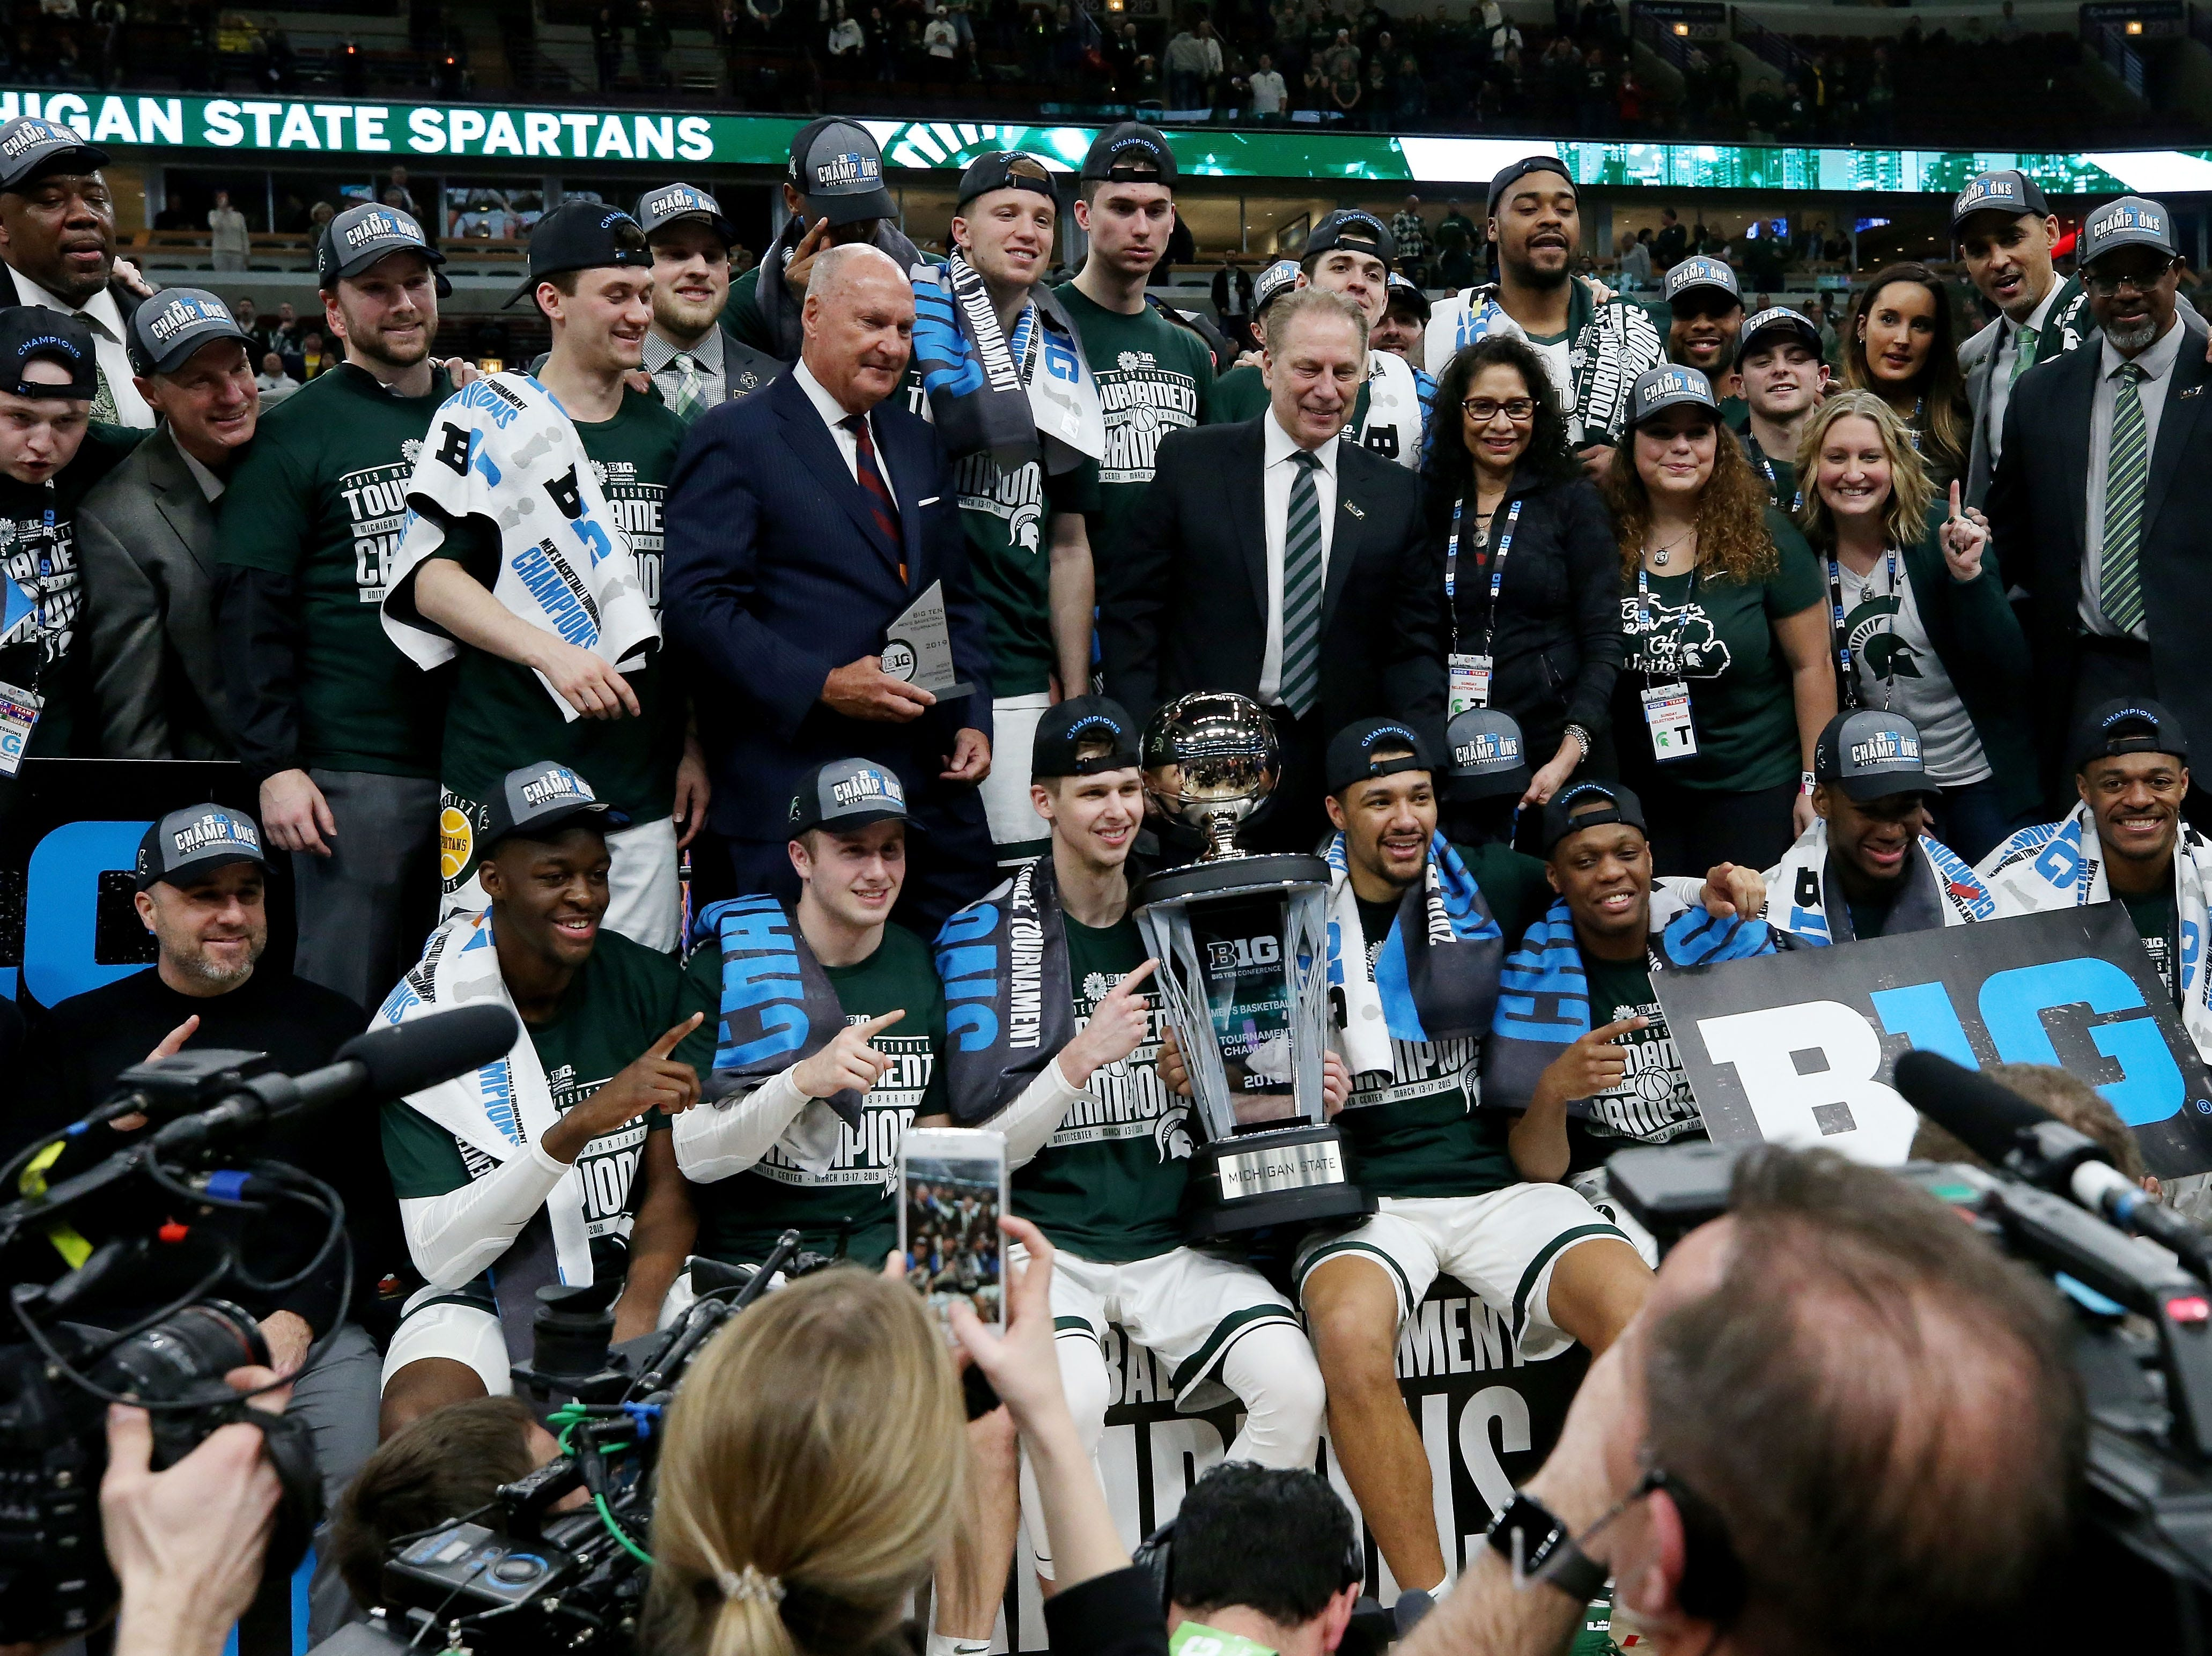 CHICAGO, ILLINOIS - MARCH 17:  The Michigan State Spartans pose for photos after beating the Michigan Wolverines 65-60 in the championship game of the Big Ten Basketball Tournament at the United Center on March 17, 2019 in Chicago, Illinois. (Photo by Jonathan Daniel/Getty Images)